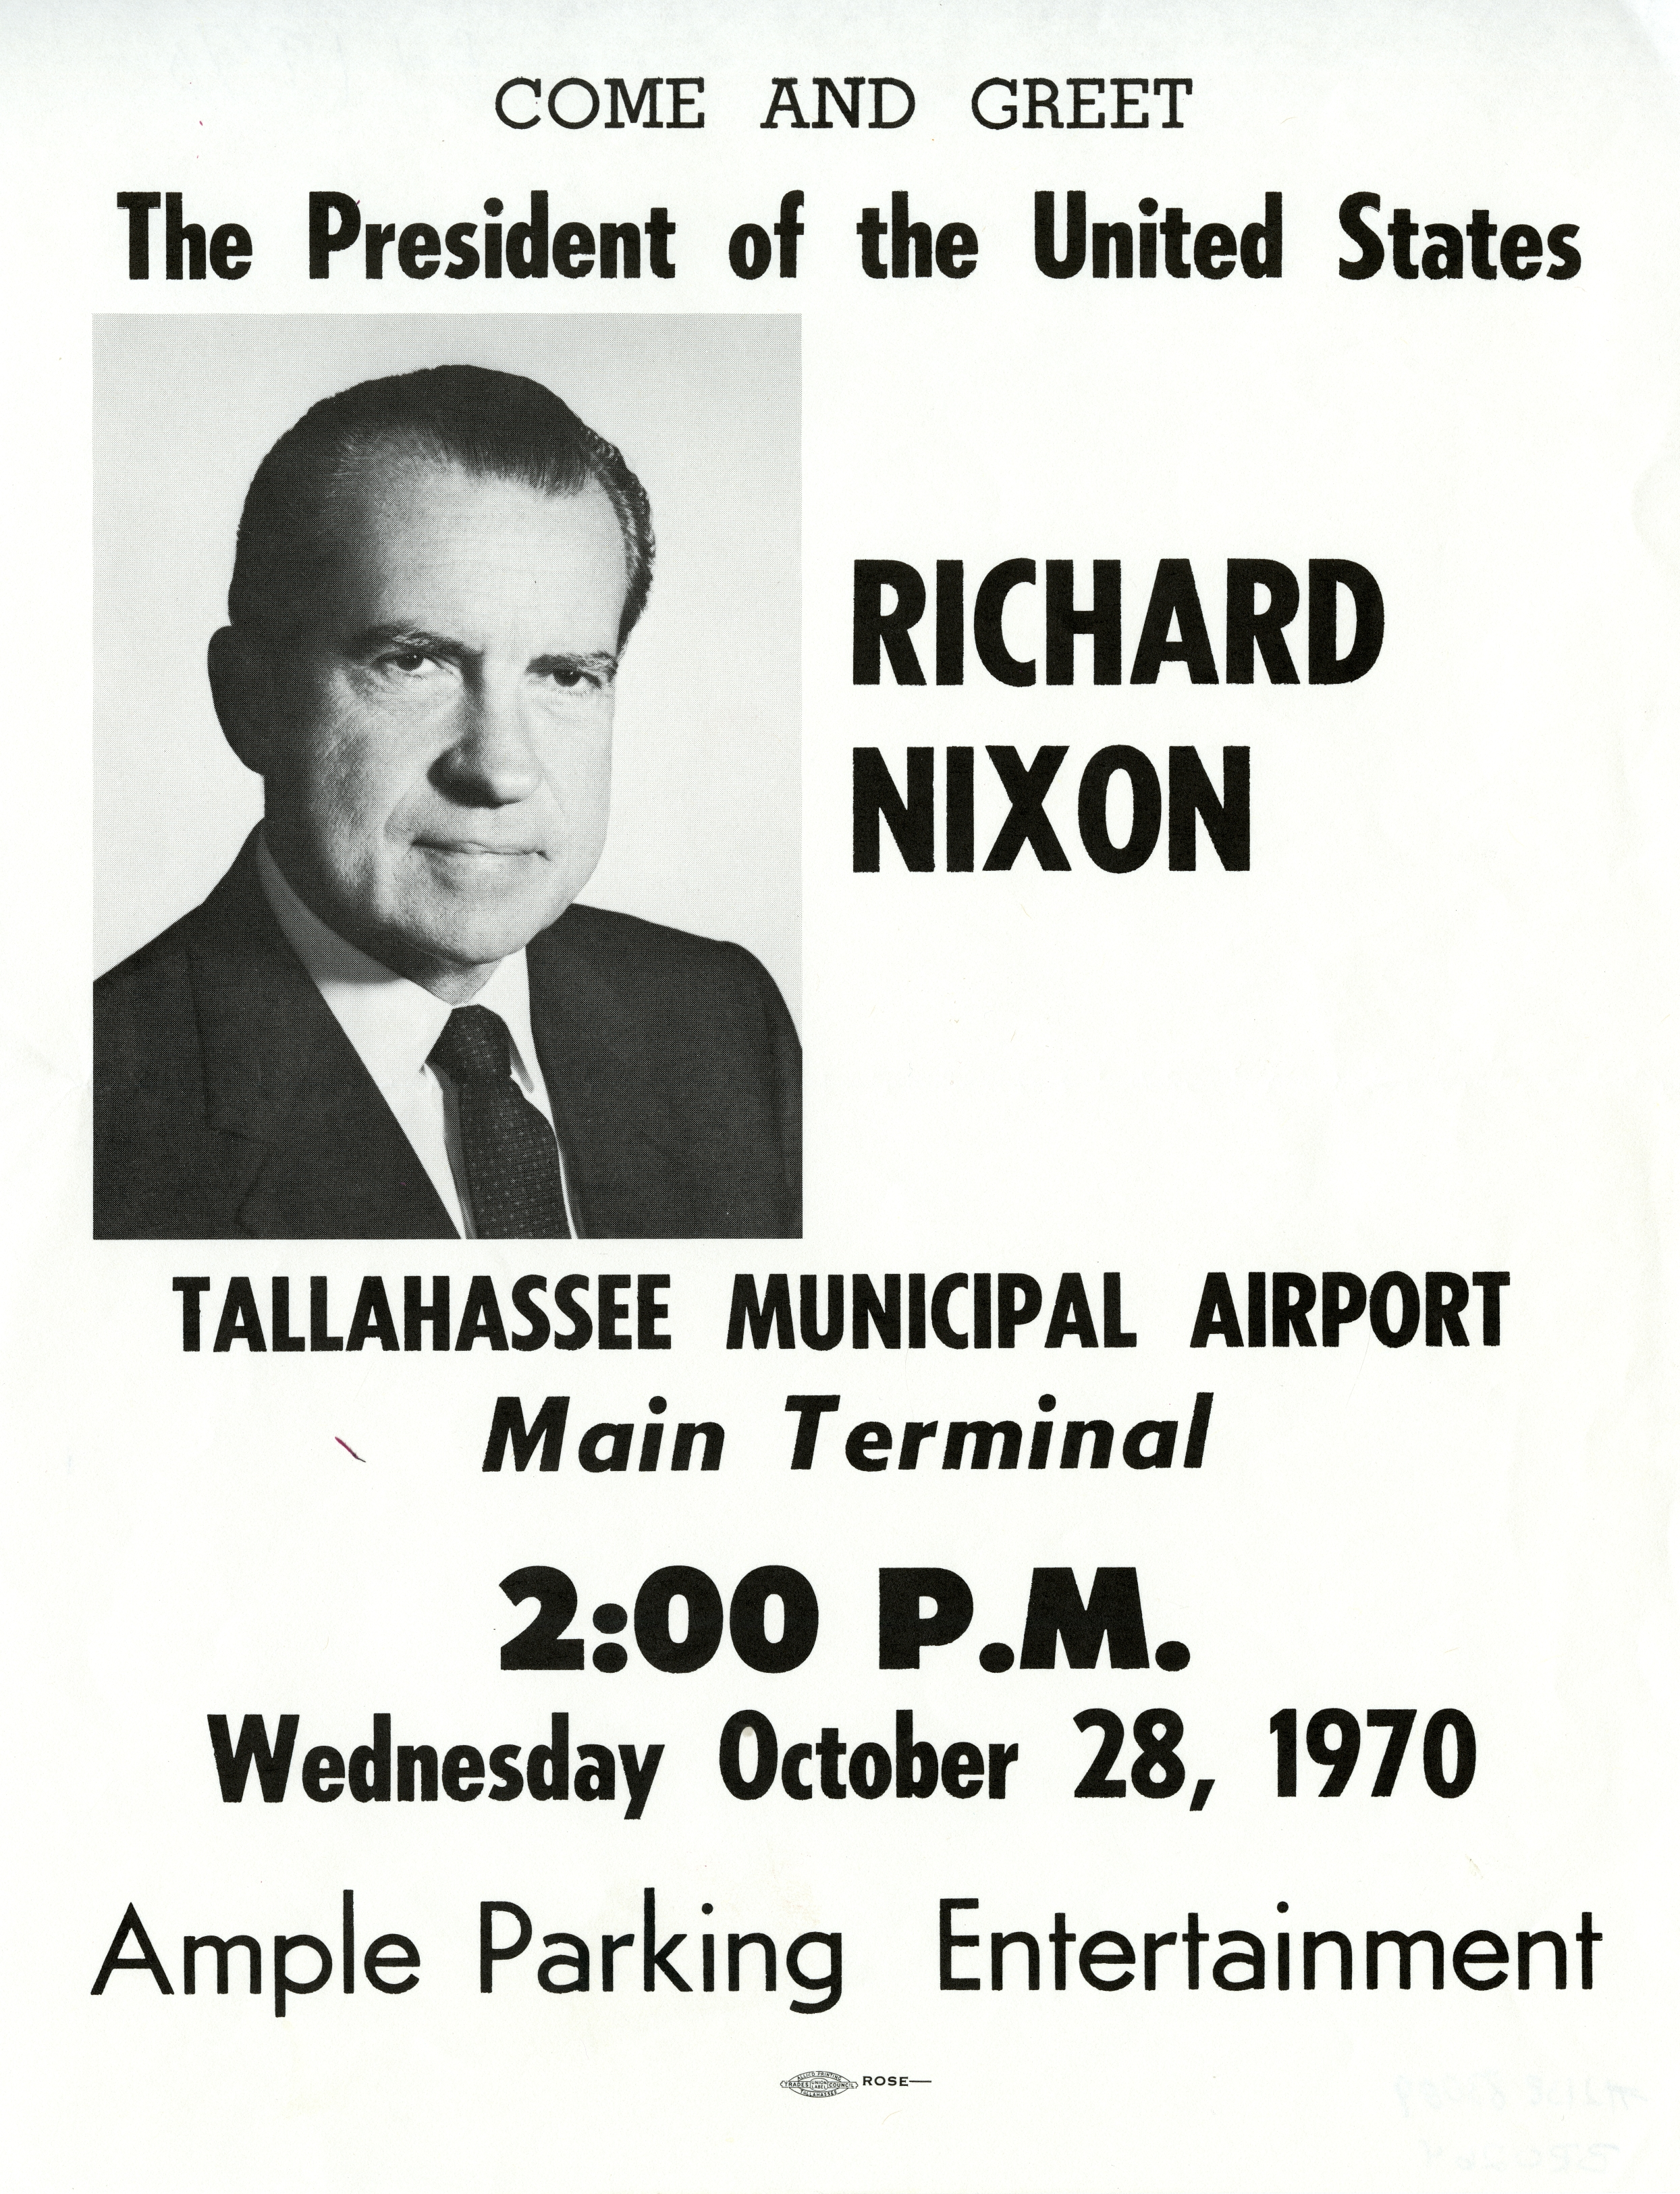 Come and greet The President of the United States Richard Nixon.